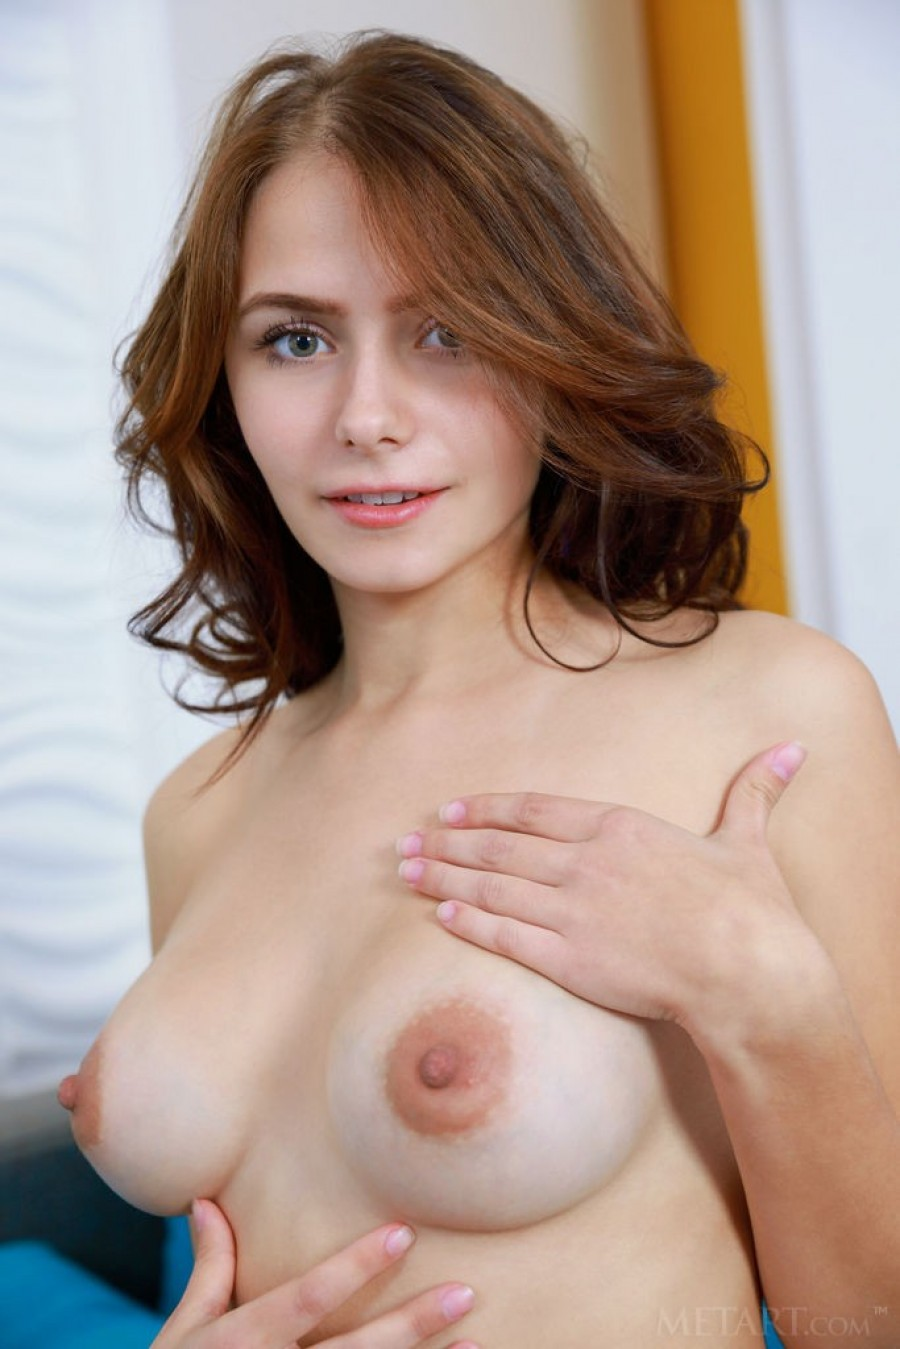 Juicy tits and a gorgeous pussy